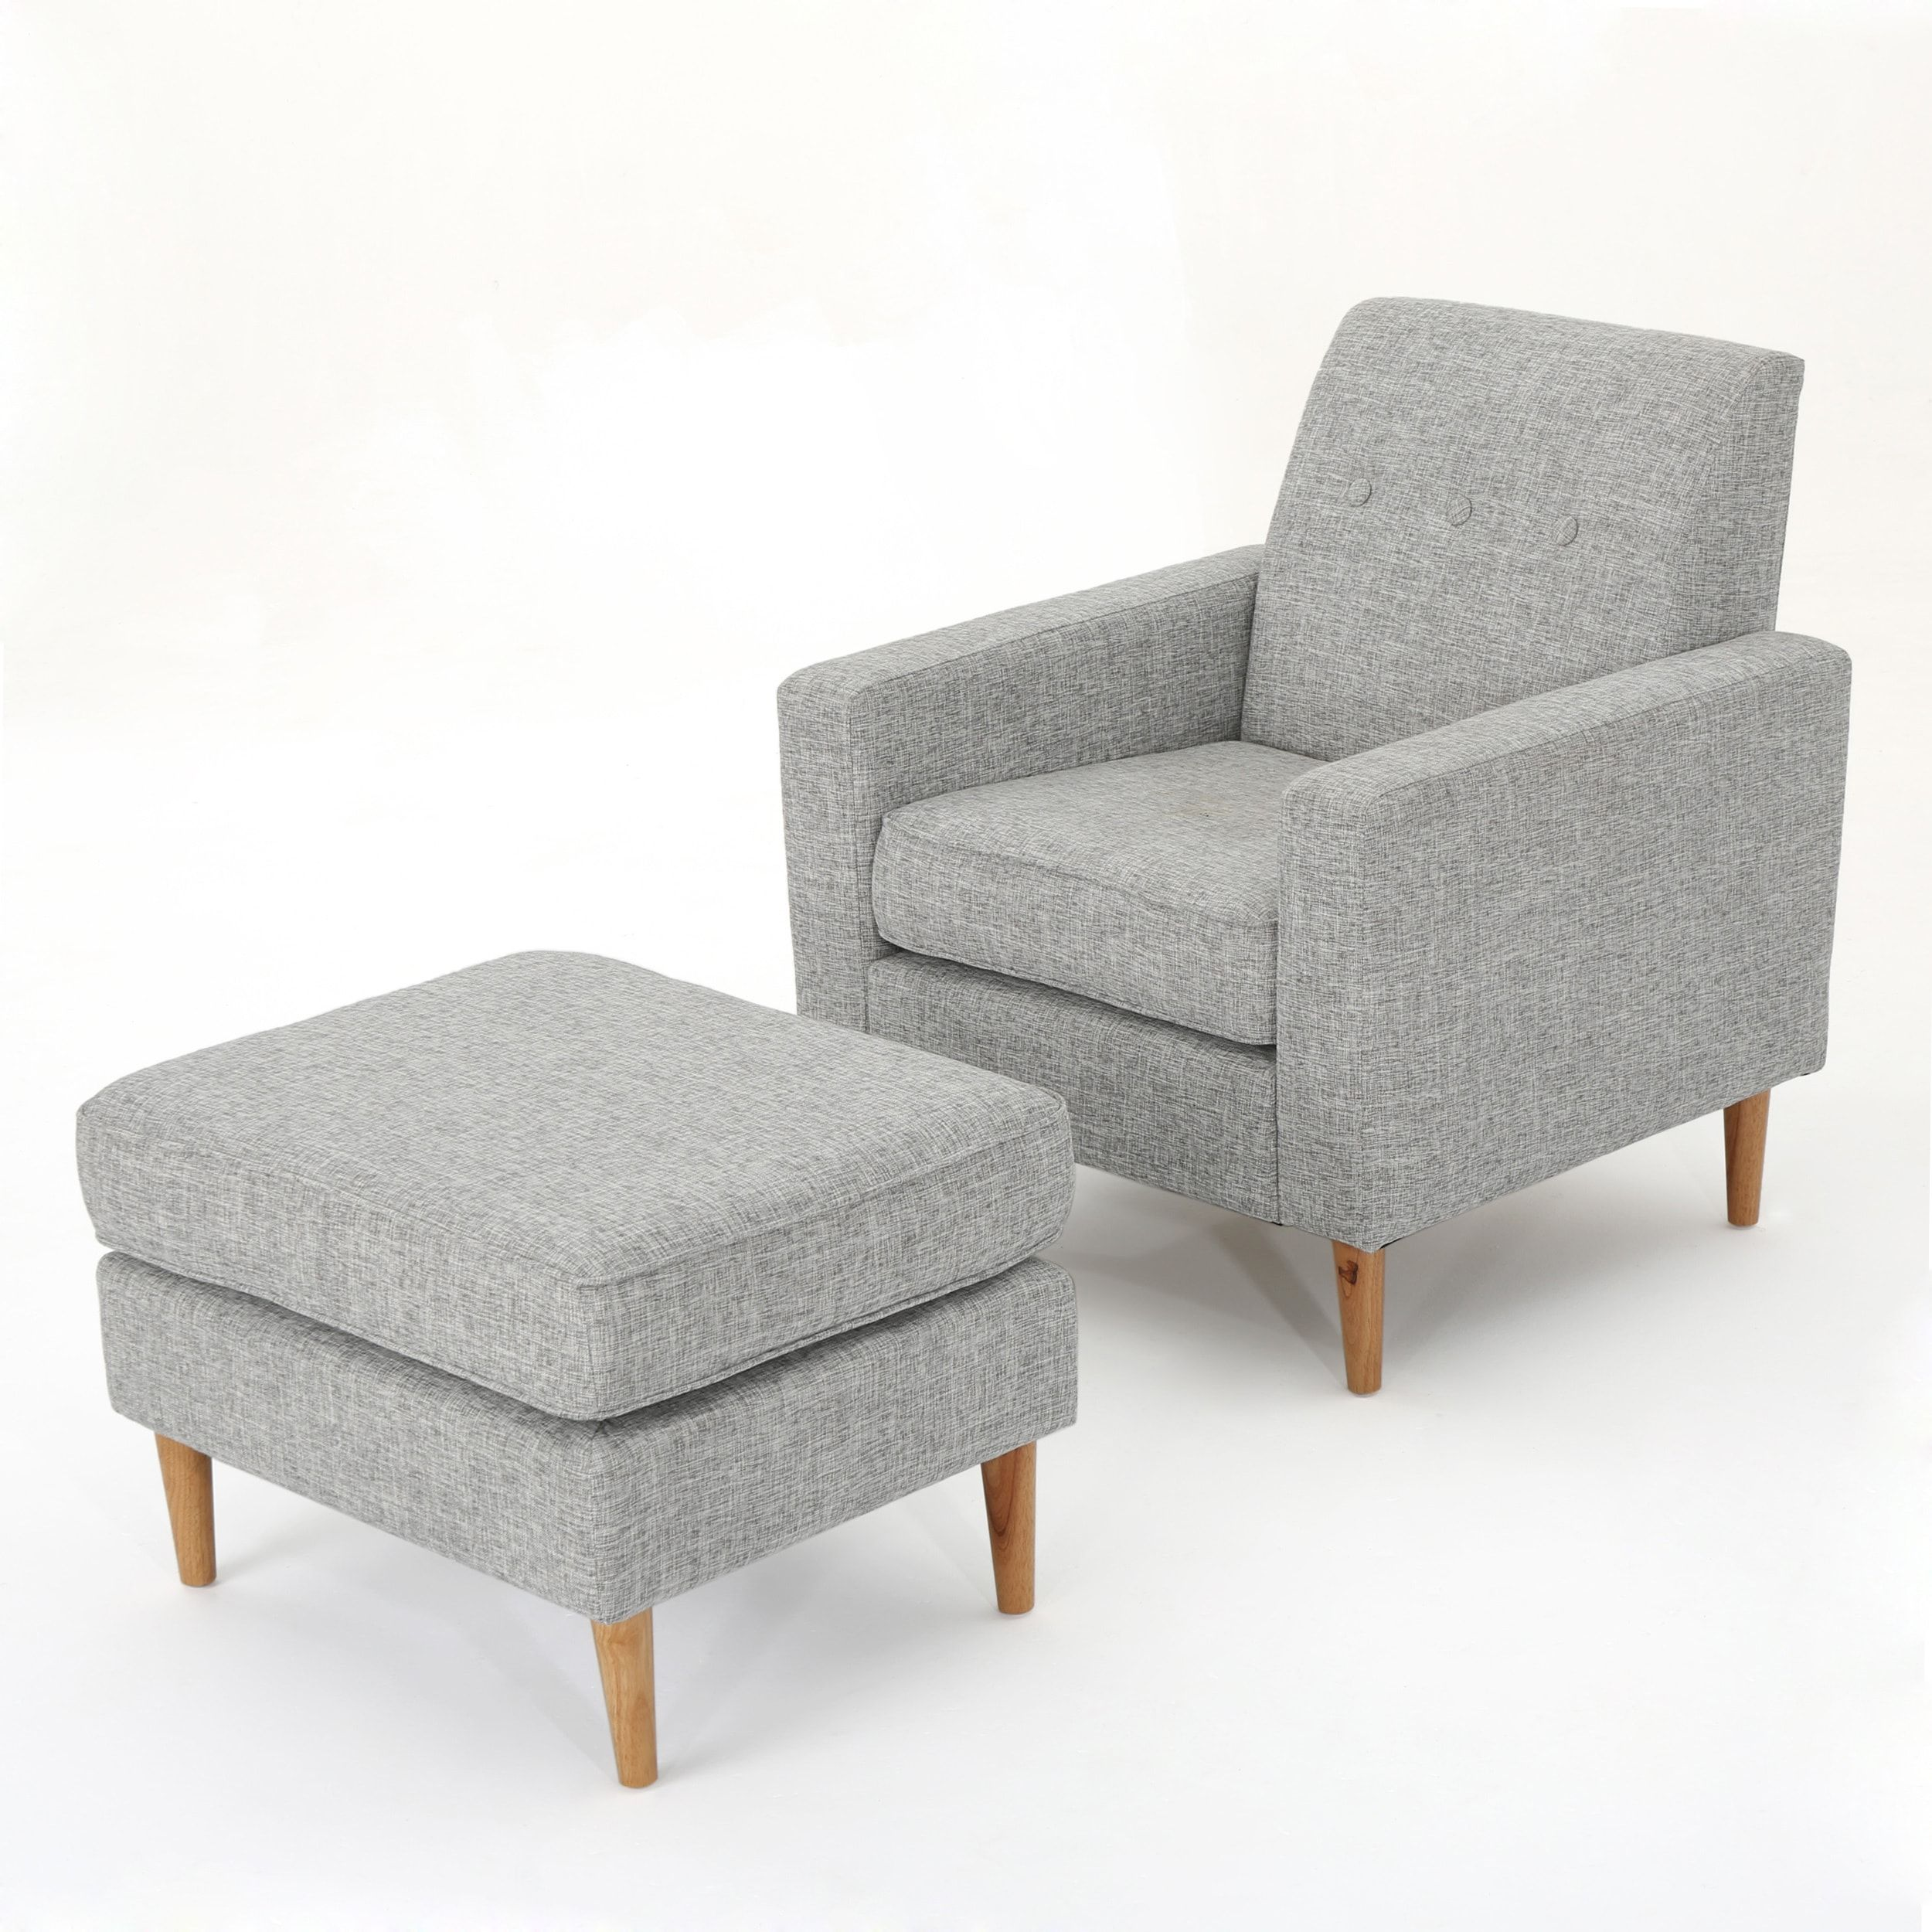 armchair and ottoman slipcover set deflecto chair mats 20 best cozy chairs for living rooms - most comfortable reading